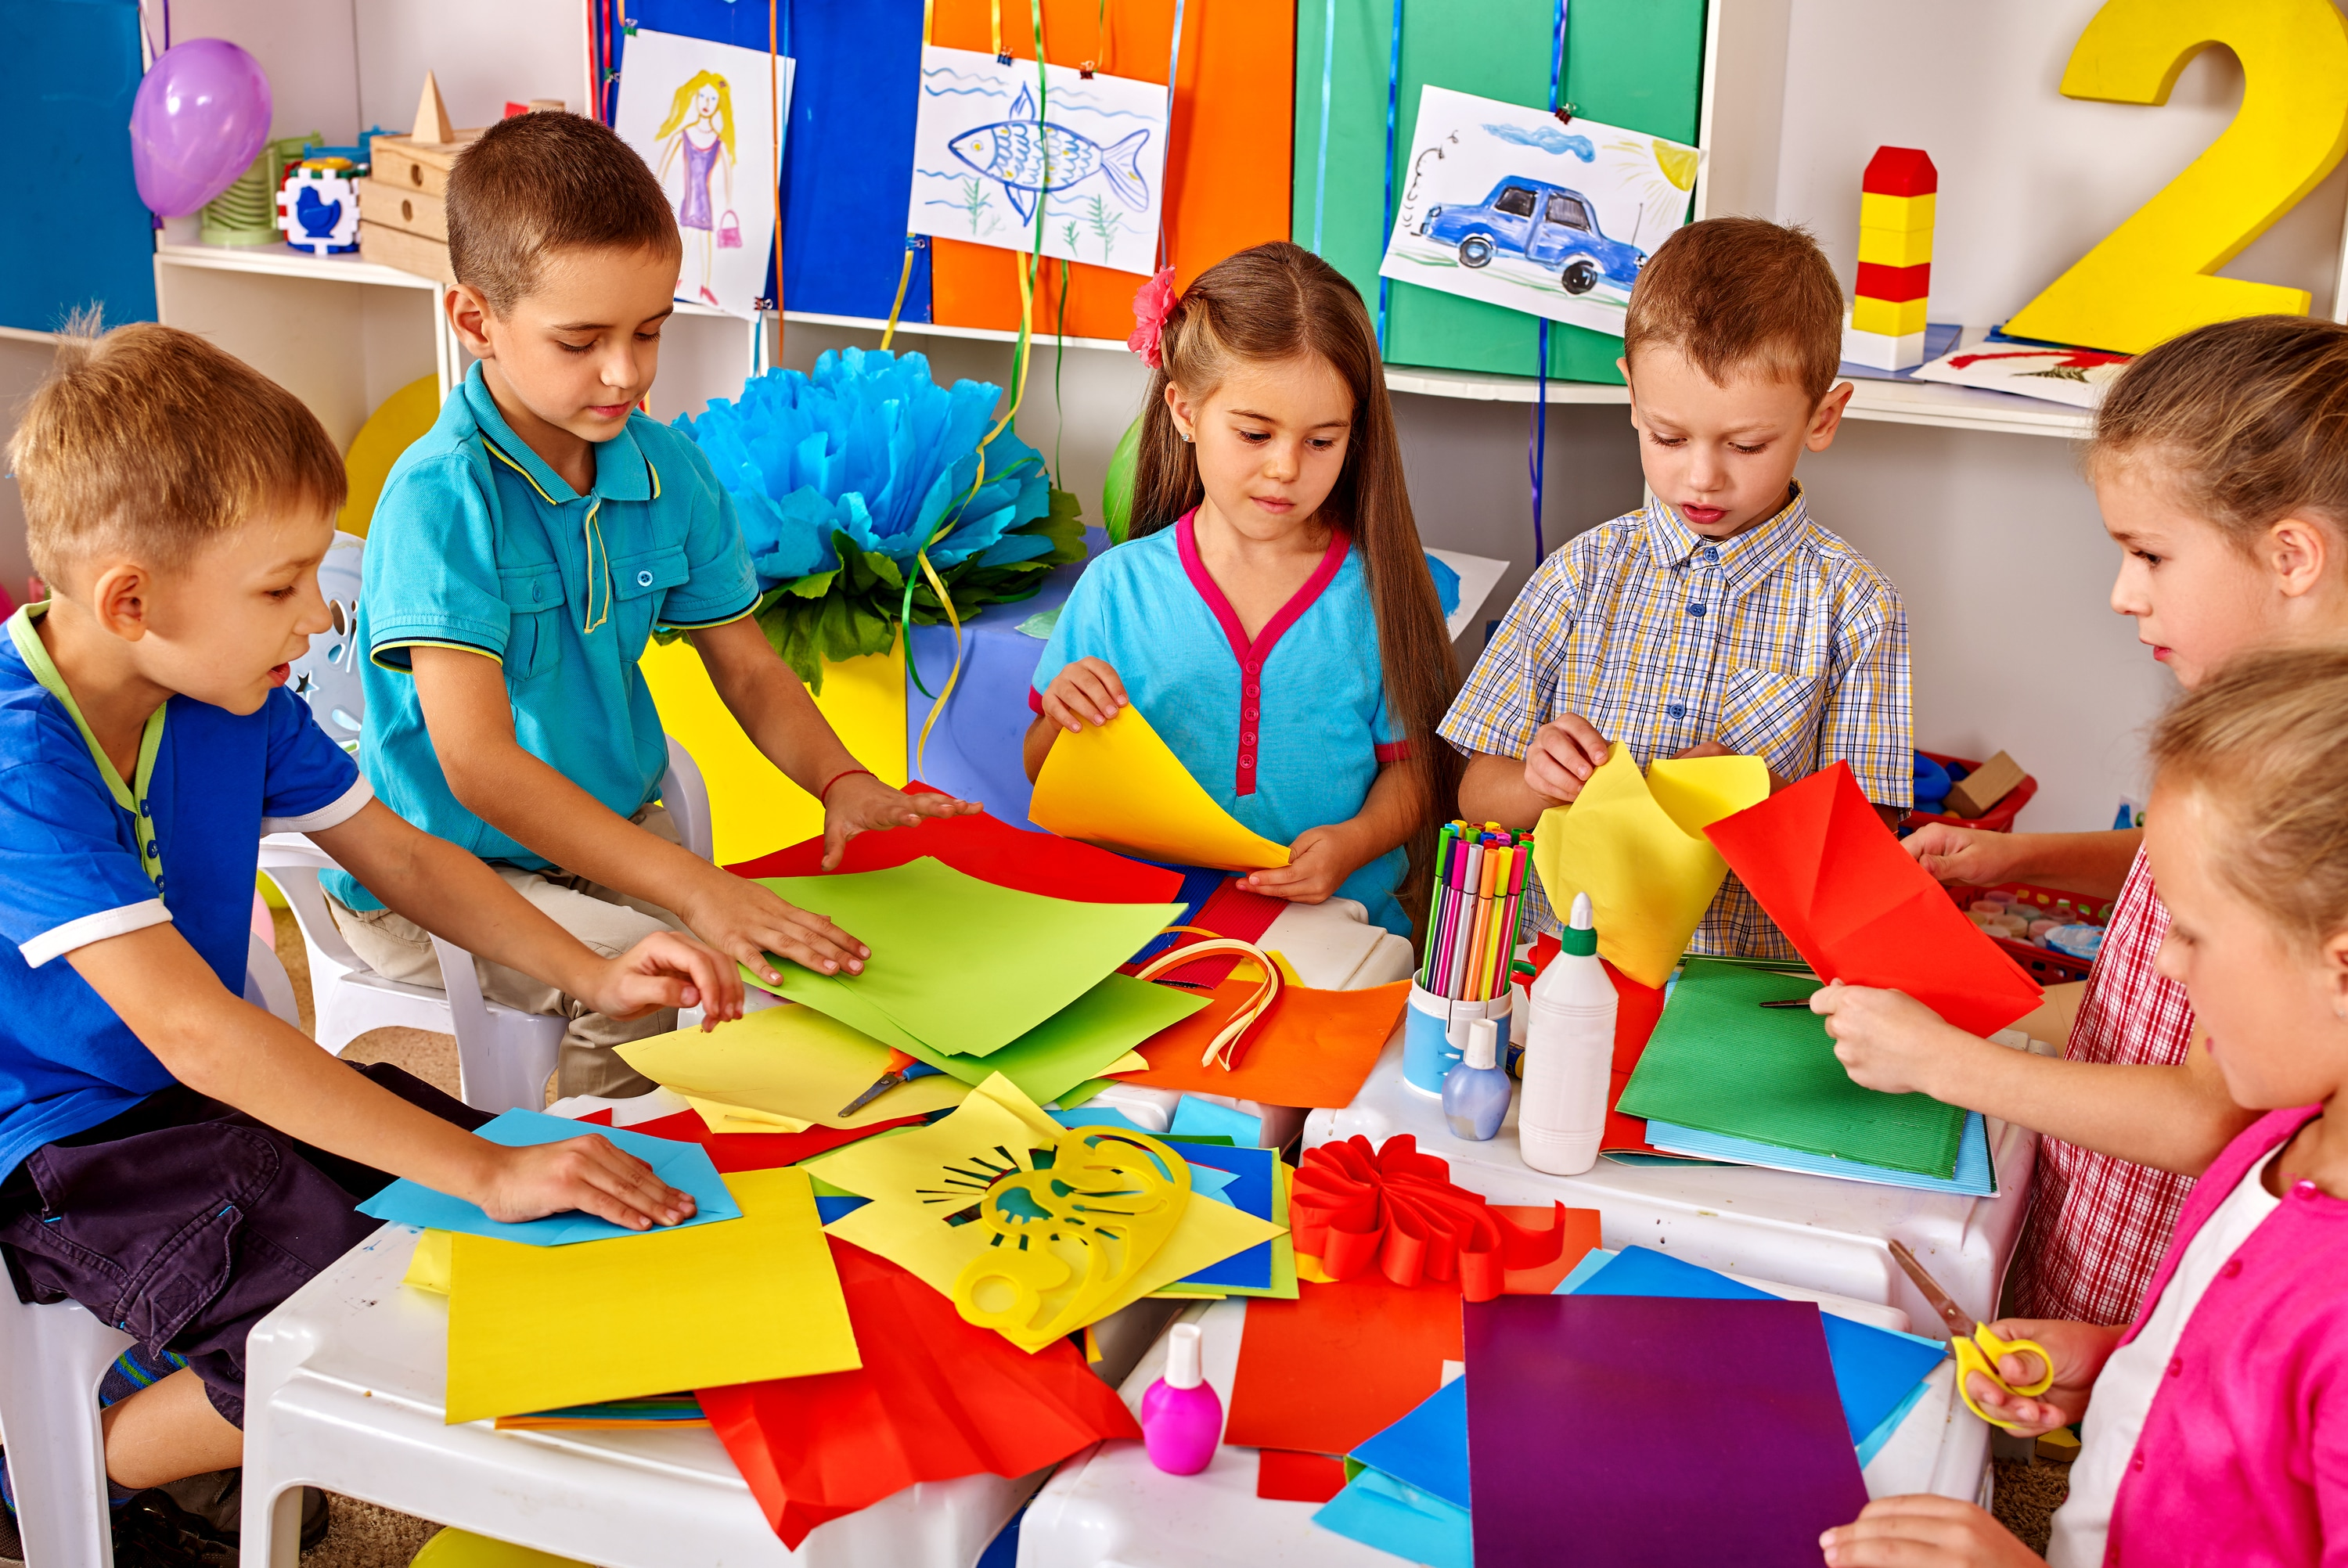 10 Affordable & Green Arts and Crafts Ideas for Kids